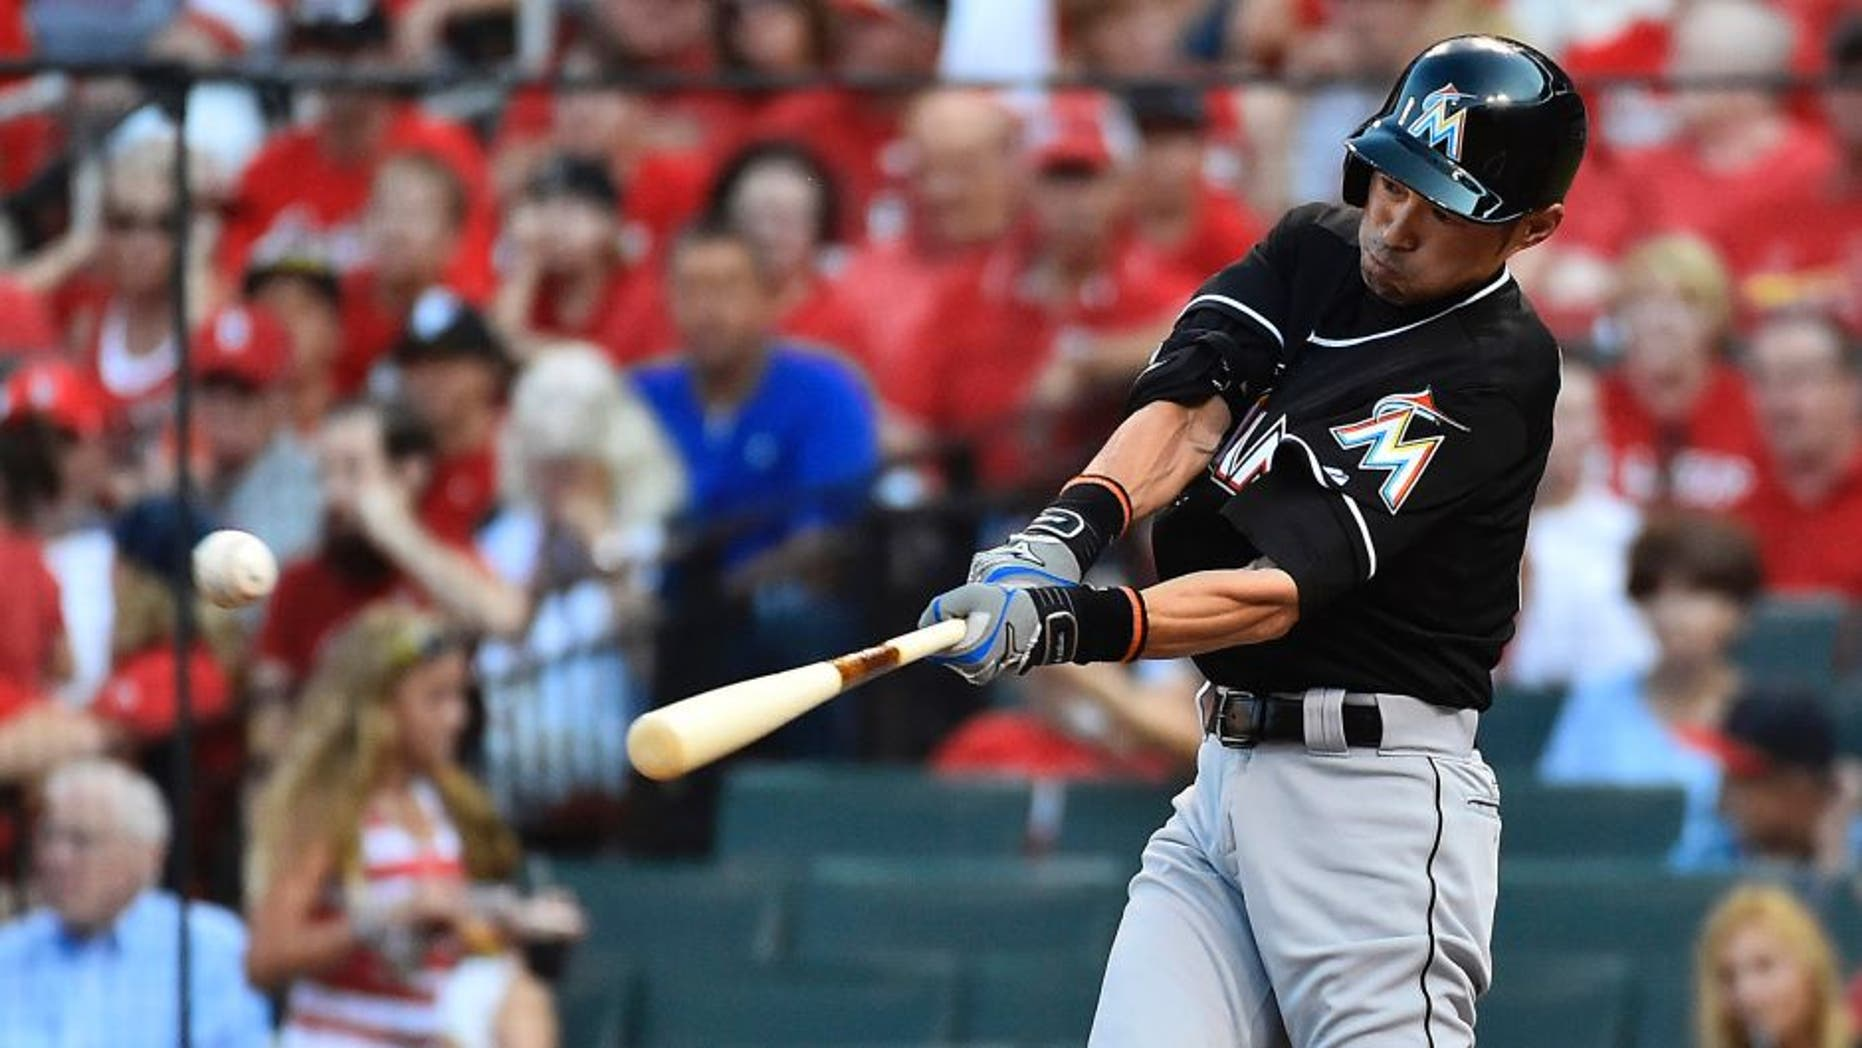 Aug 15, 2015; St. Louis, MO, USA; Miami Marlins left fielder Ichiro Suzuki (51) hits a single off of St. Louis Cardinals starting pitcher John Lackey (not pictured) in the first inning at Busch Stadium. Mandatory Credit: Jasen Vinlove-USA TODAY Sports